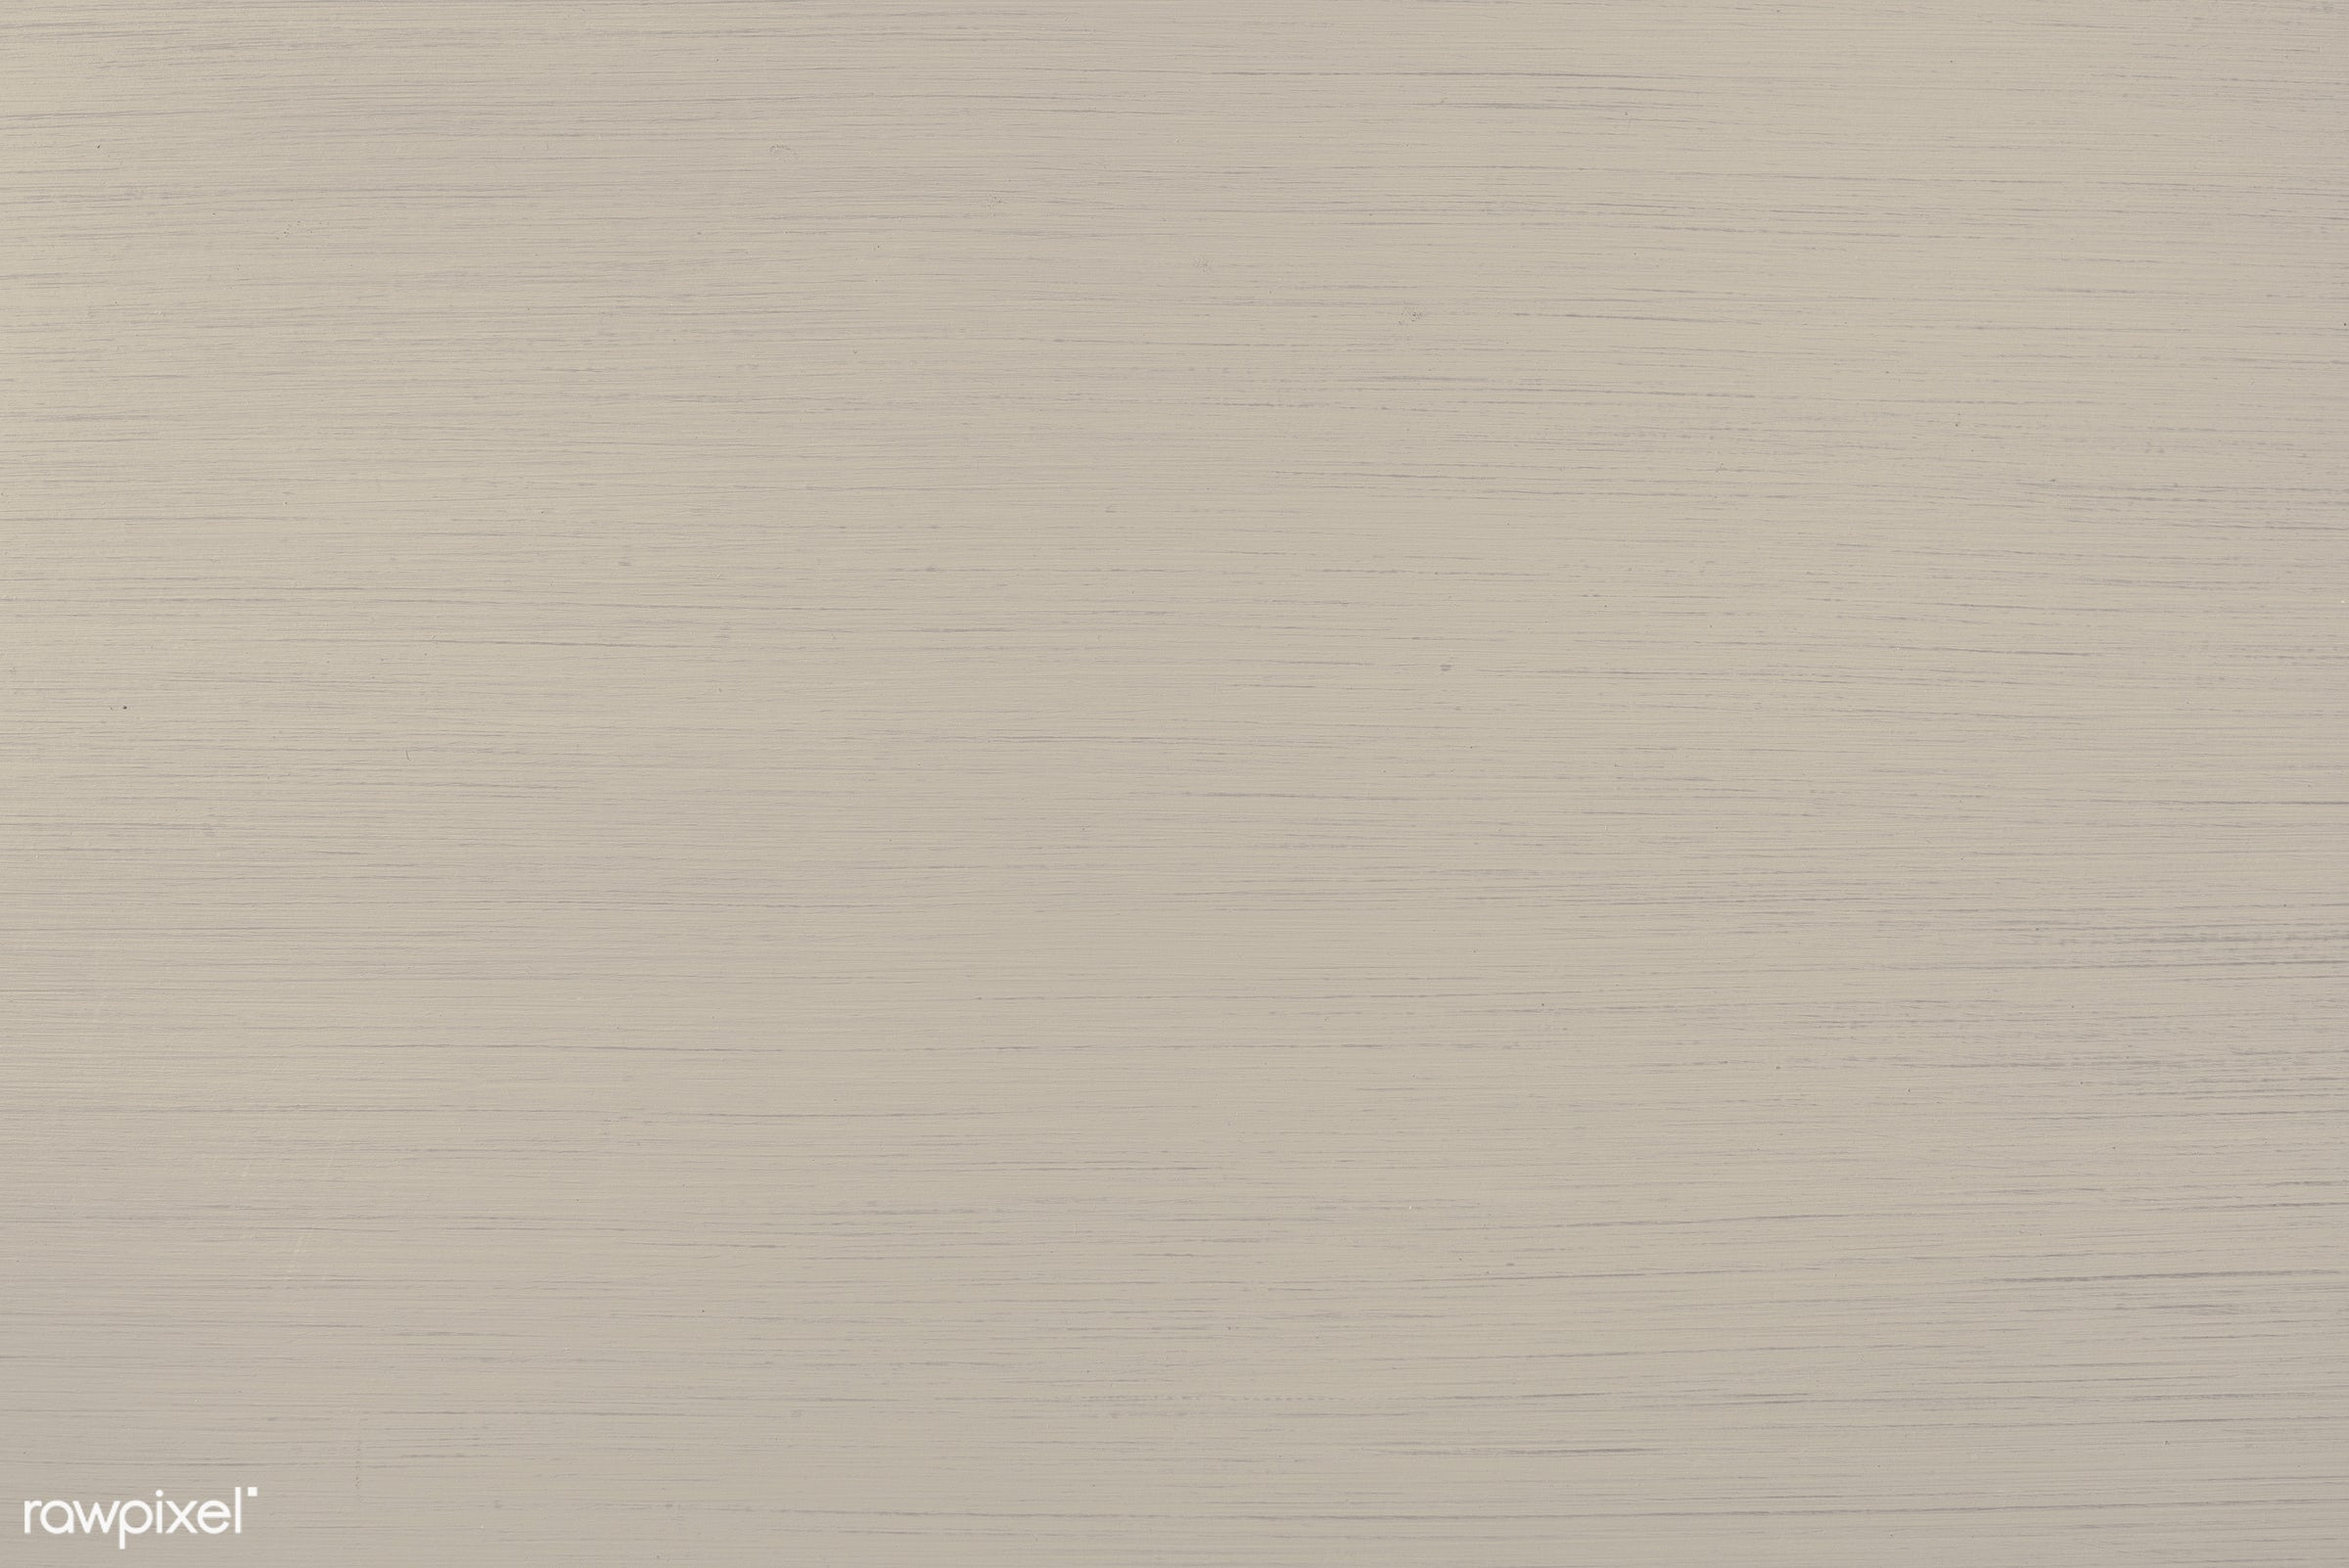 panel, nobody, copy space, surface, wood, simple, plank, space, backdrop, grunge, style, timber, structure, creative,...